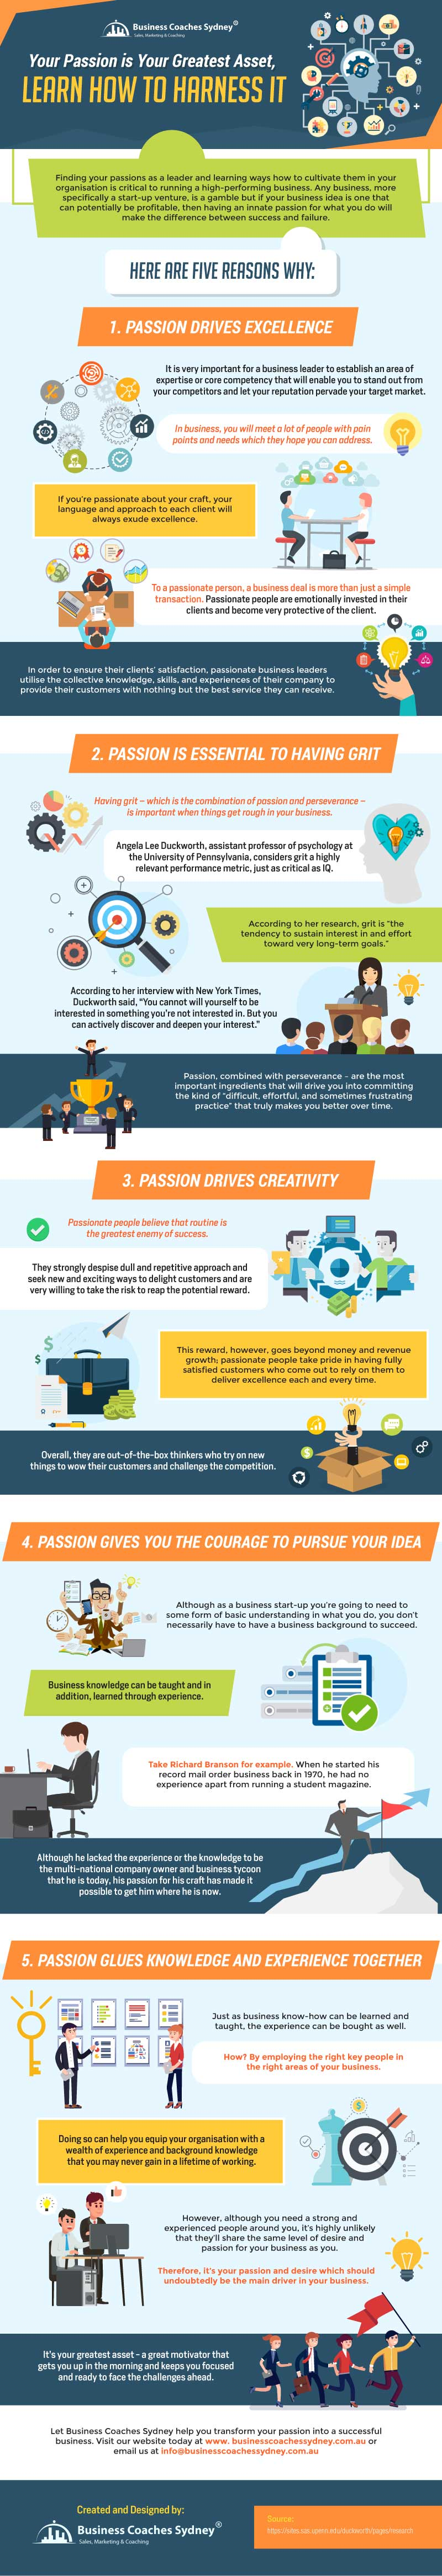 Your-Passion-is-Your-Greatest-Asset,-Learn-How-to-Harness-It